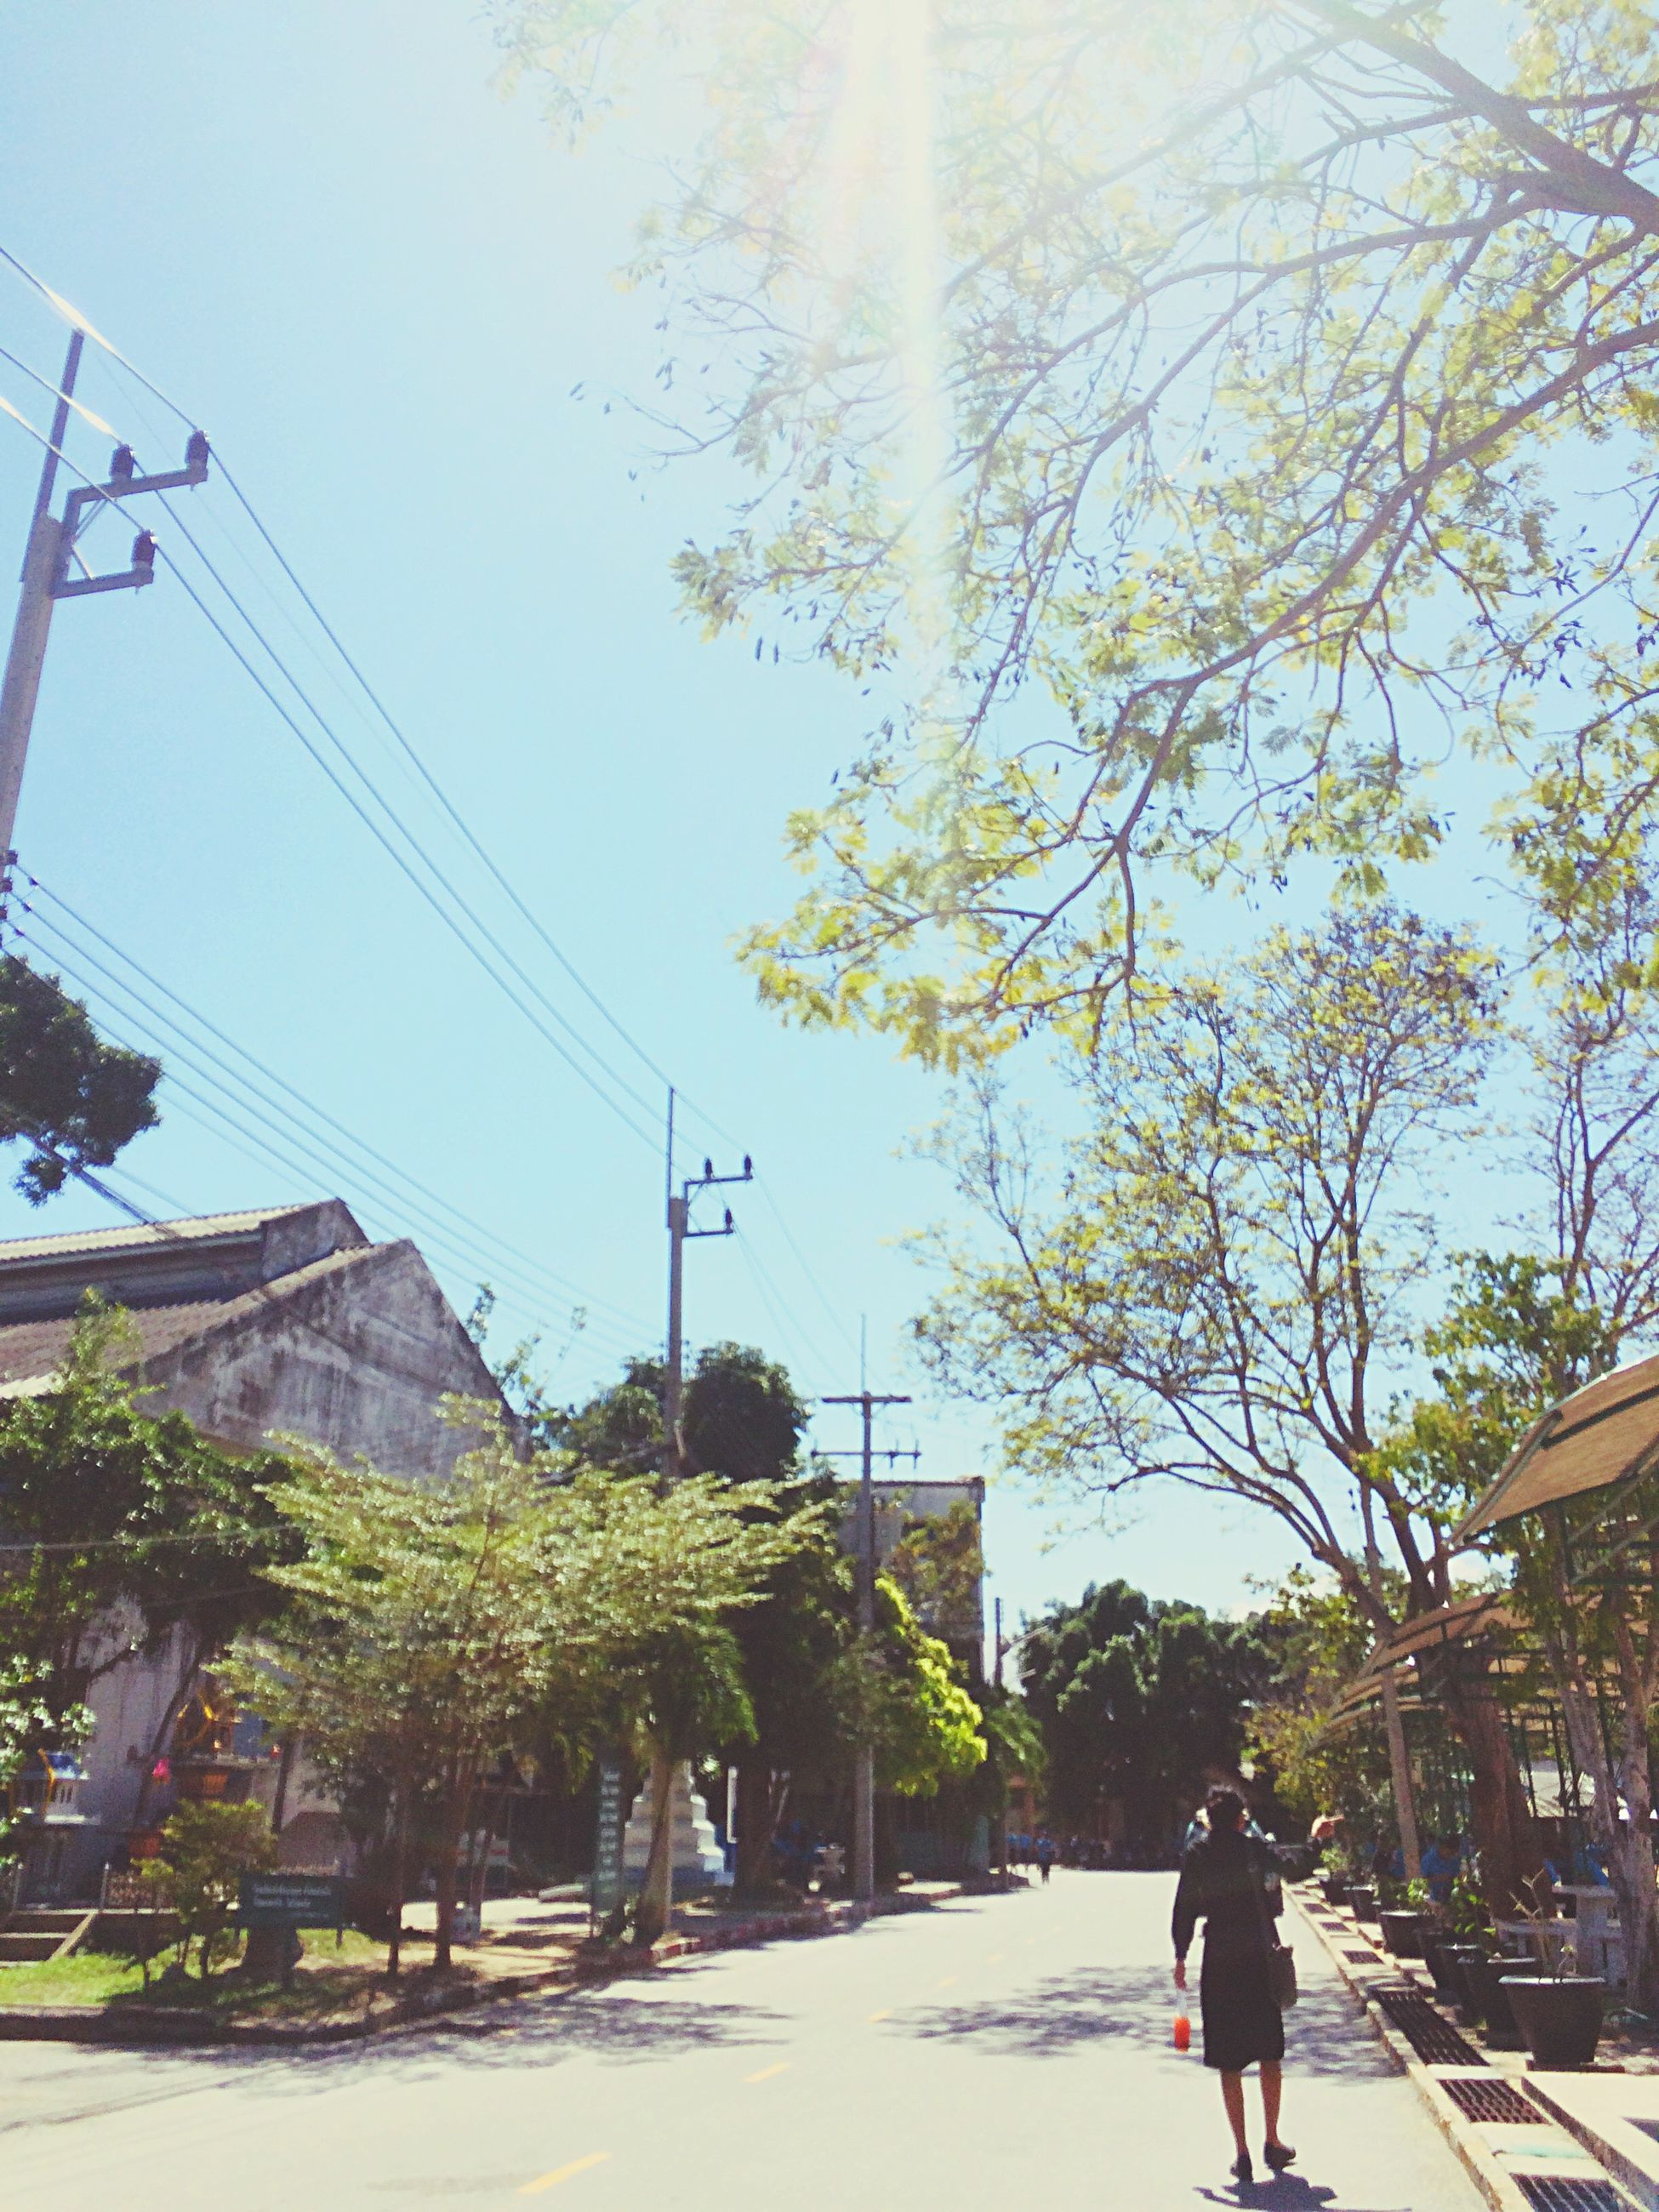 tree, outdoors, sky, day, city, architecture, one person, people